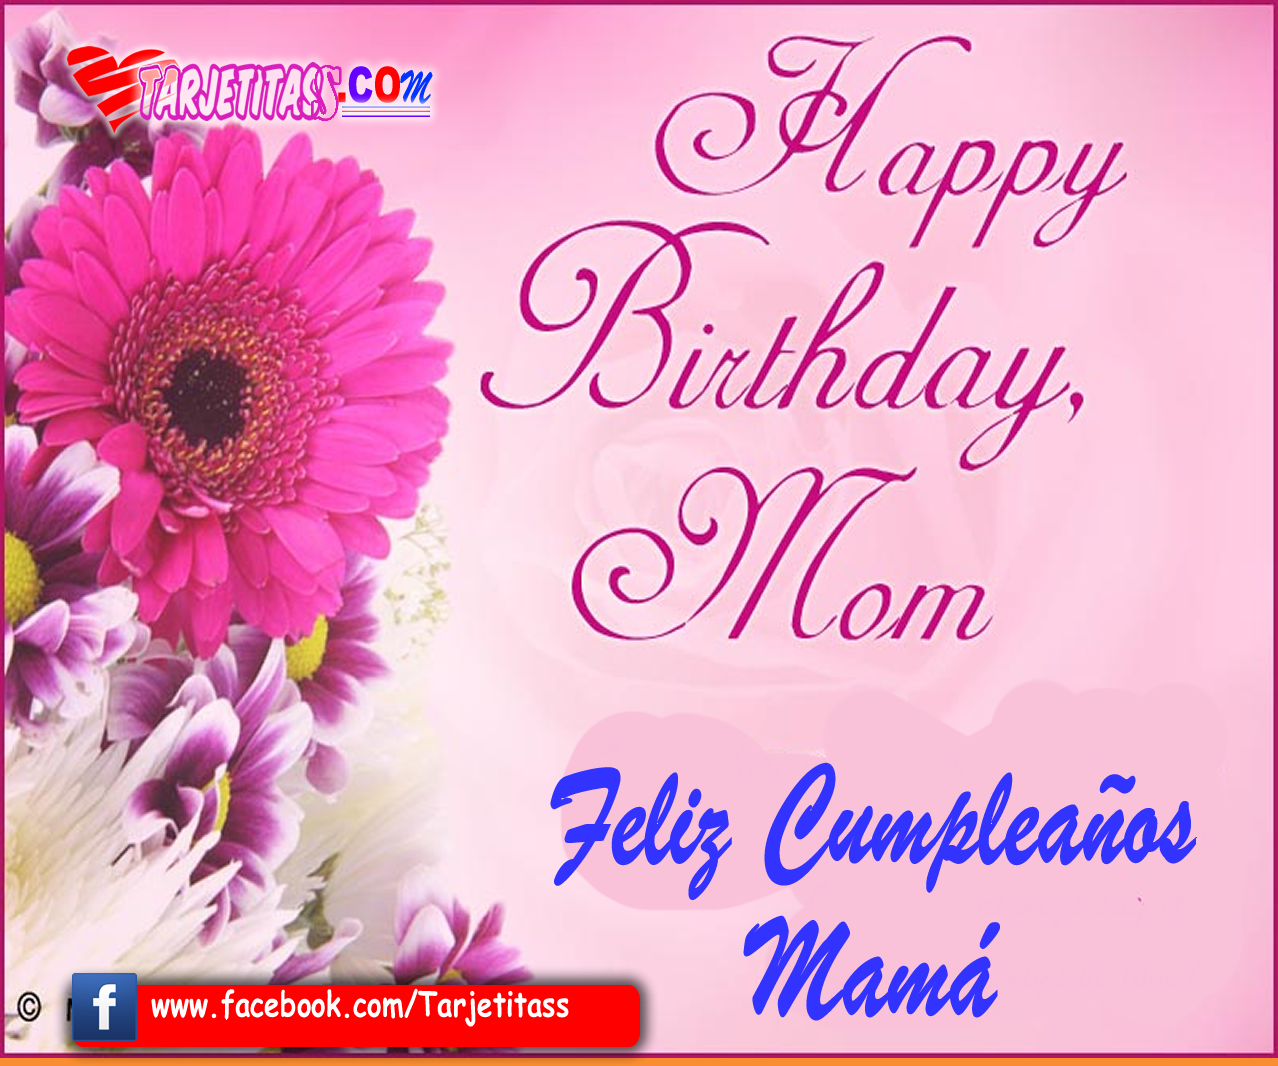 Birthday wishes for mother tarjetitasdeamor i am so glad youre my mother i hope that your birthday brings you everything you could want and more birthday wishes mom kristyandbryce Images